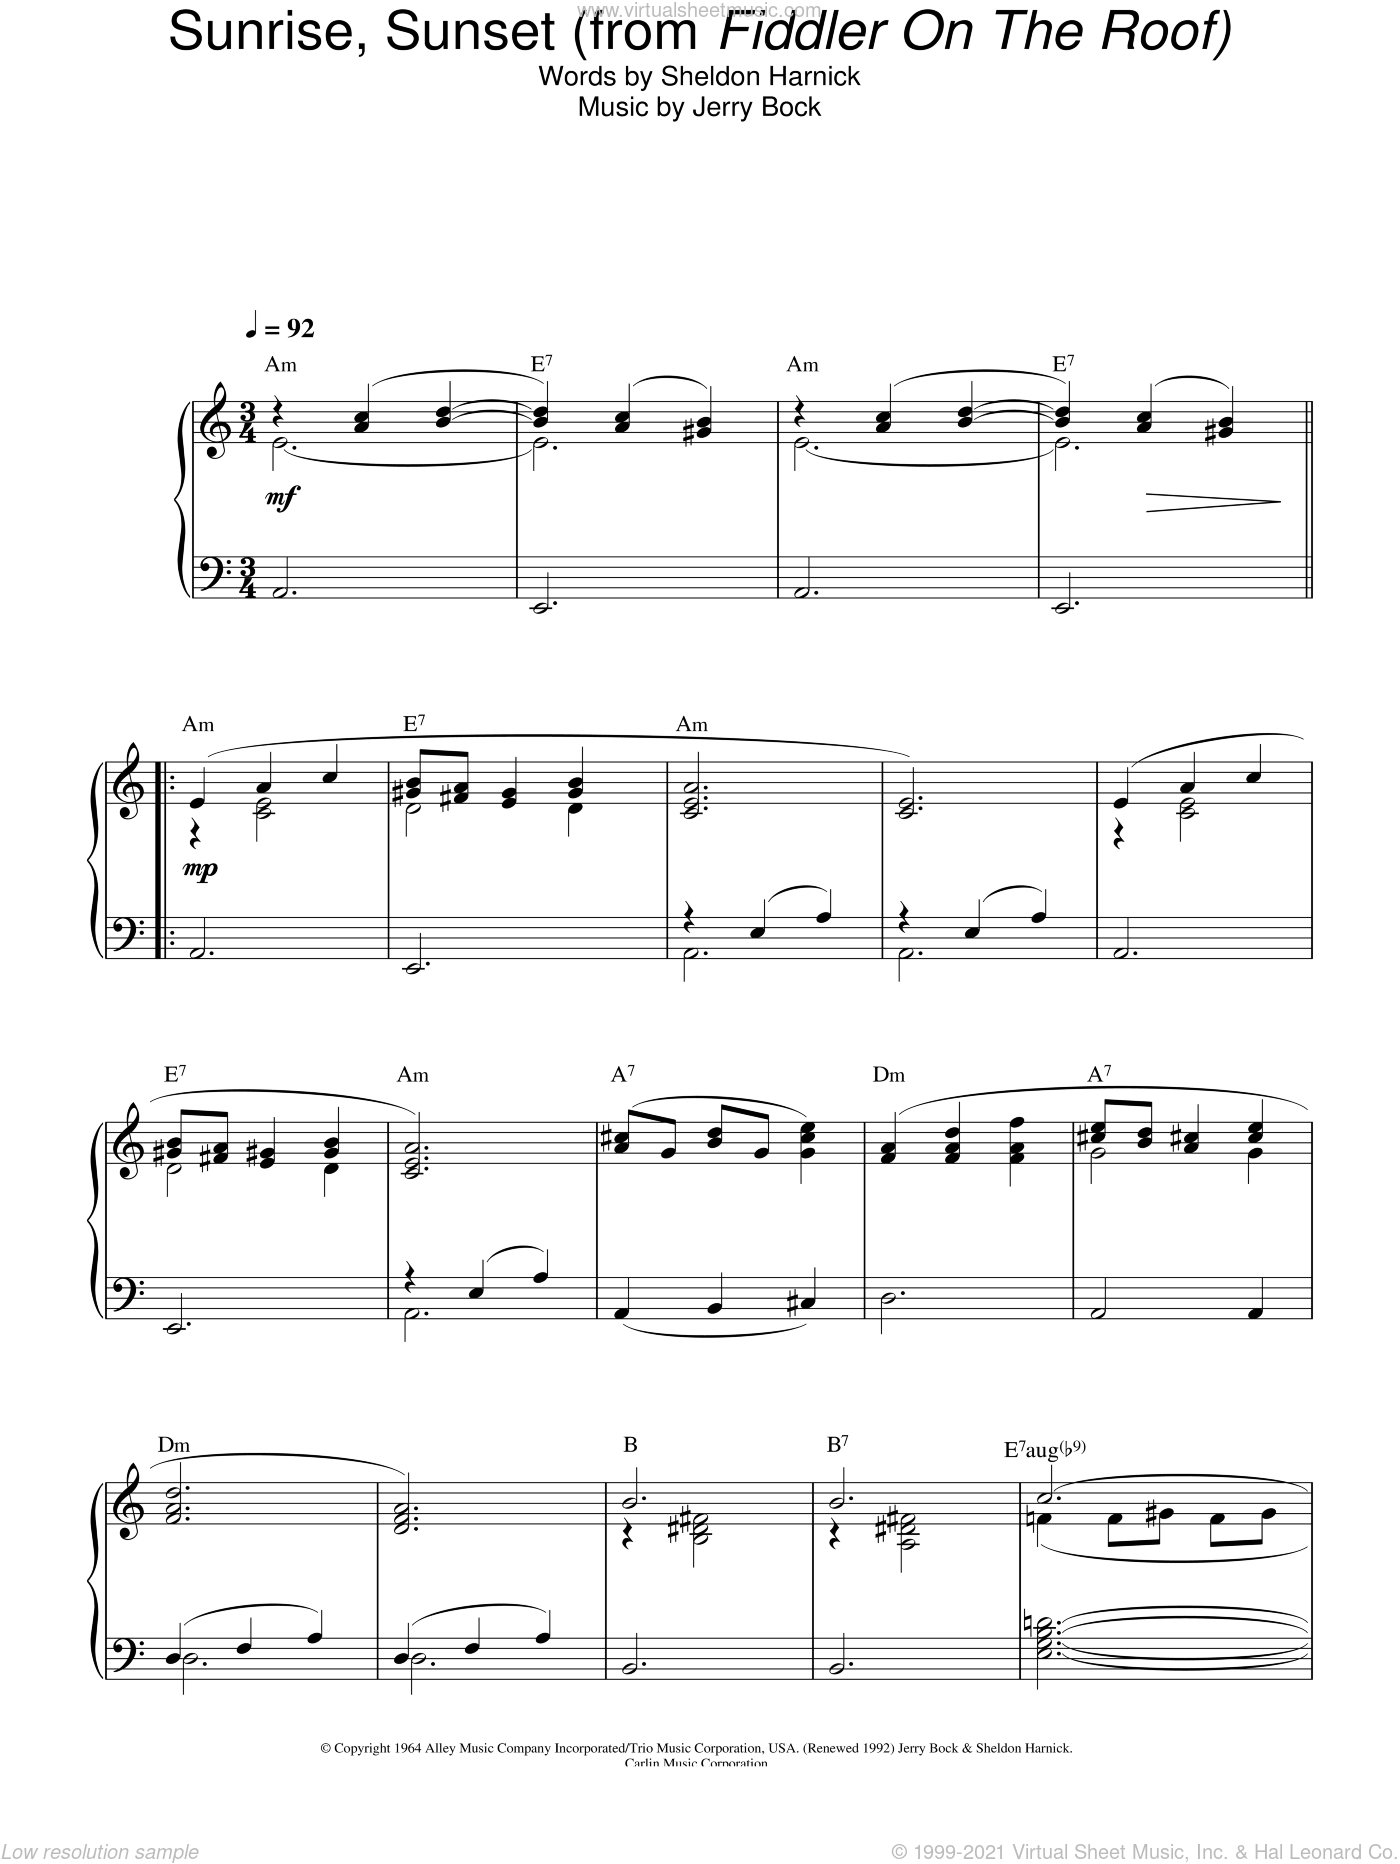 Sunrise, Sunset sheet music for piano solo by Sheldon Harnick